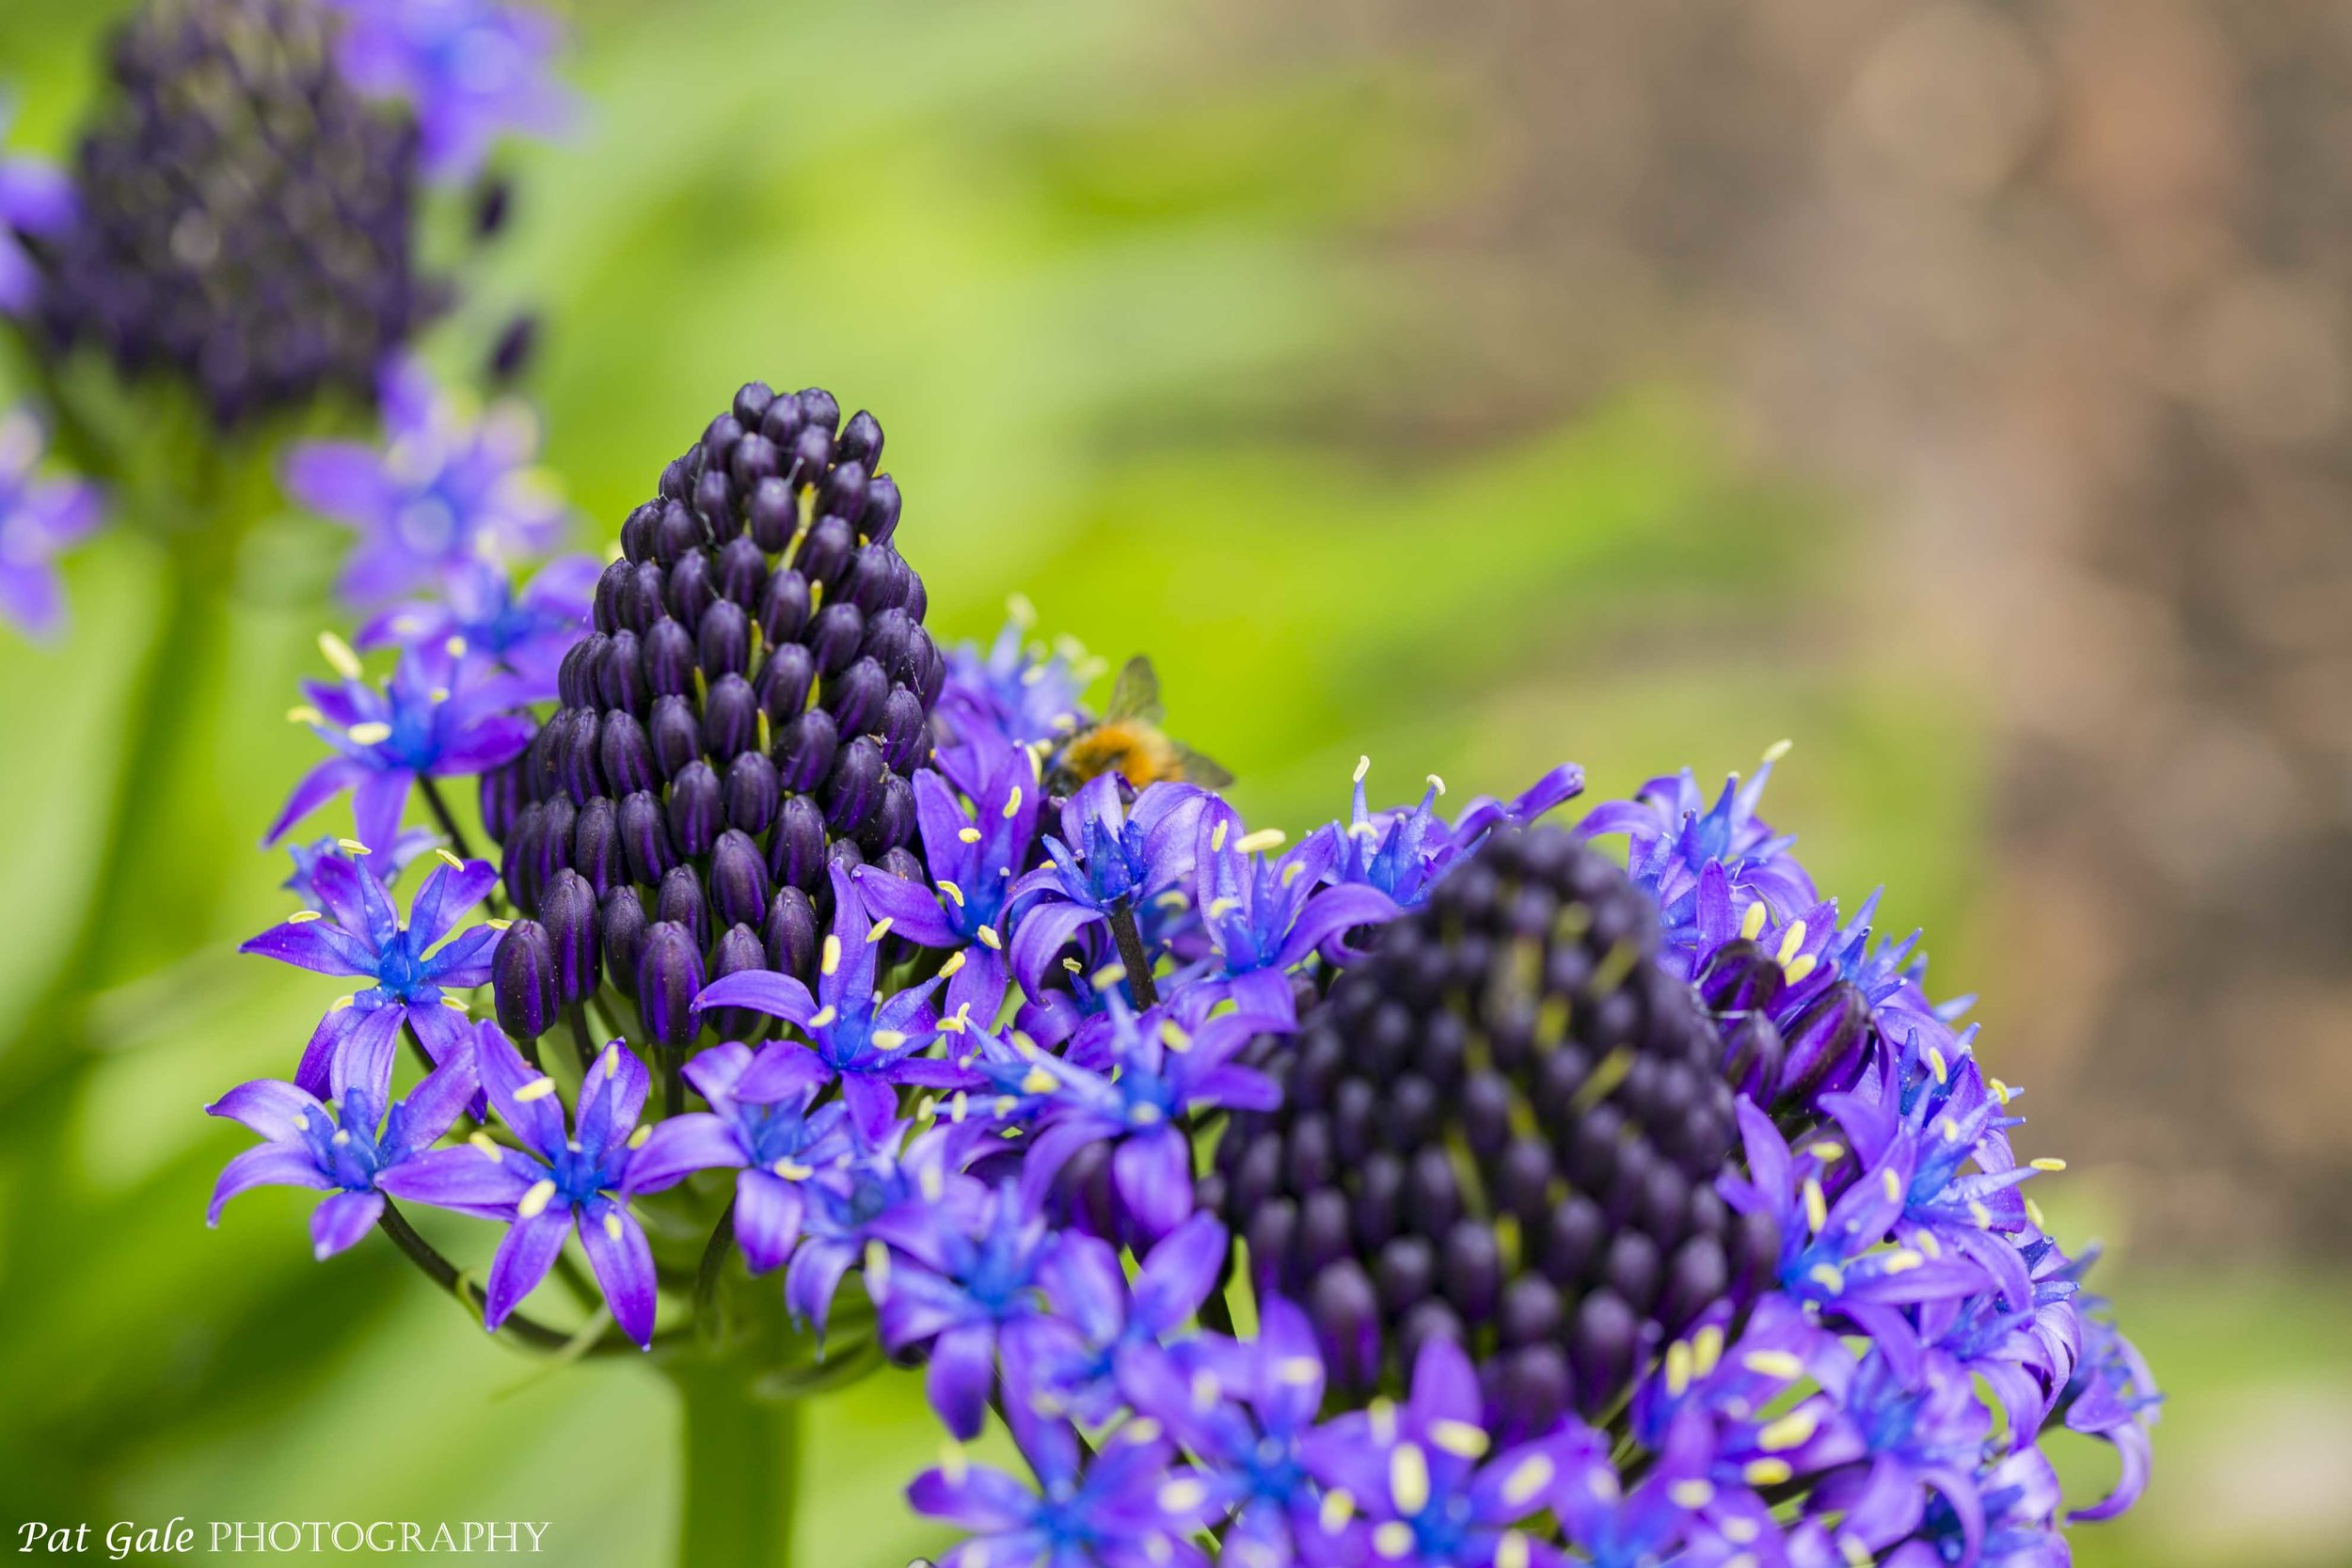 Flowers  Blue     Pat Gale Photography a9 jpg